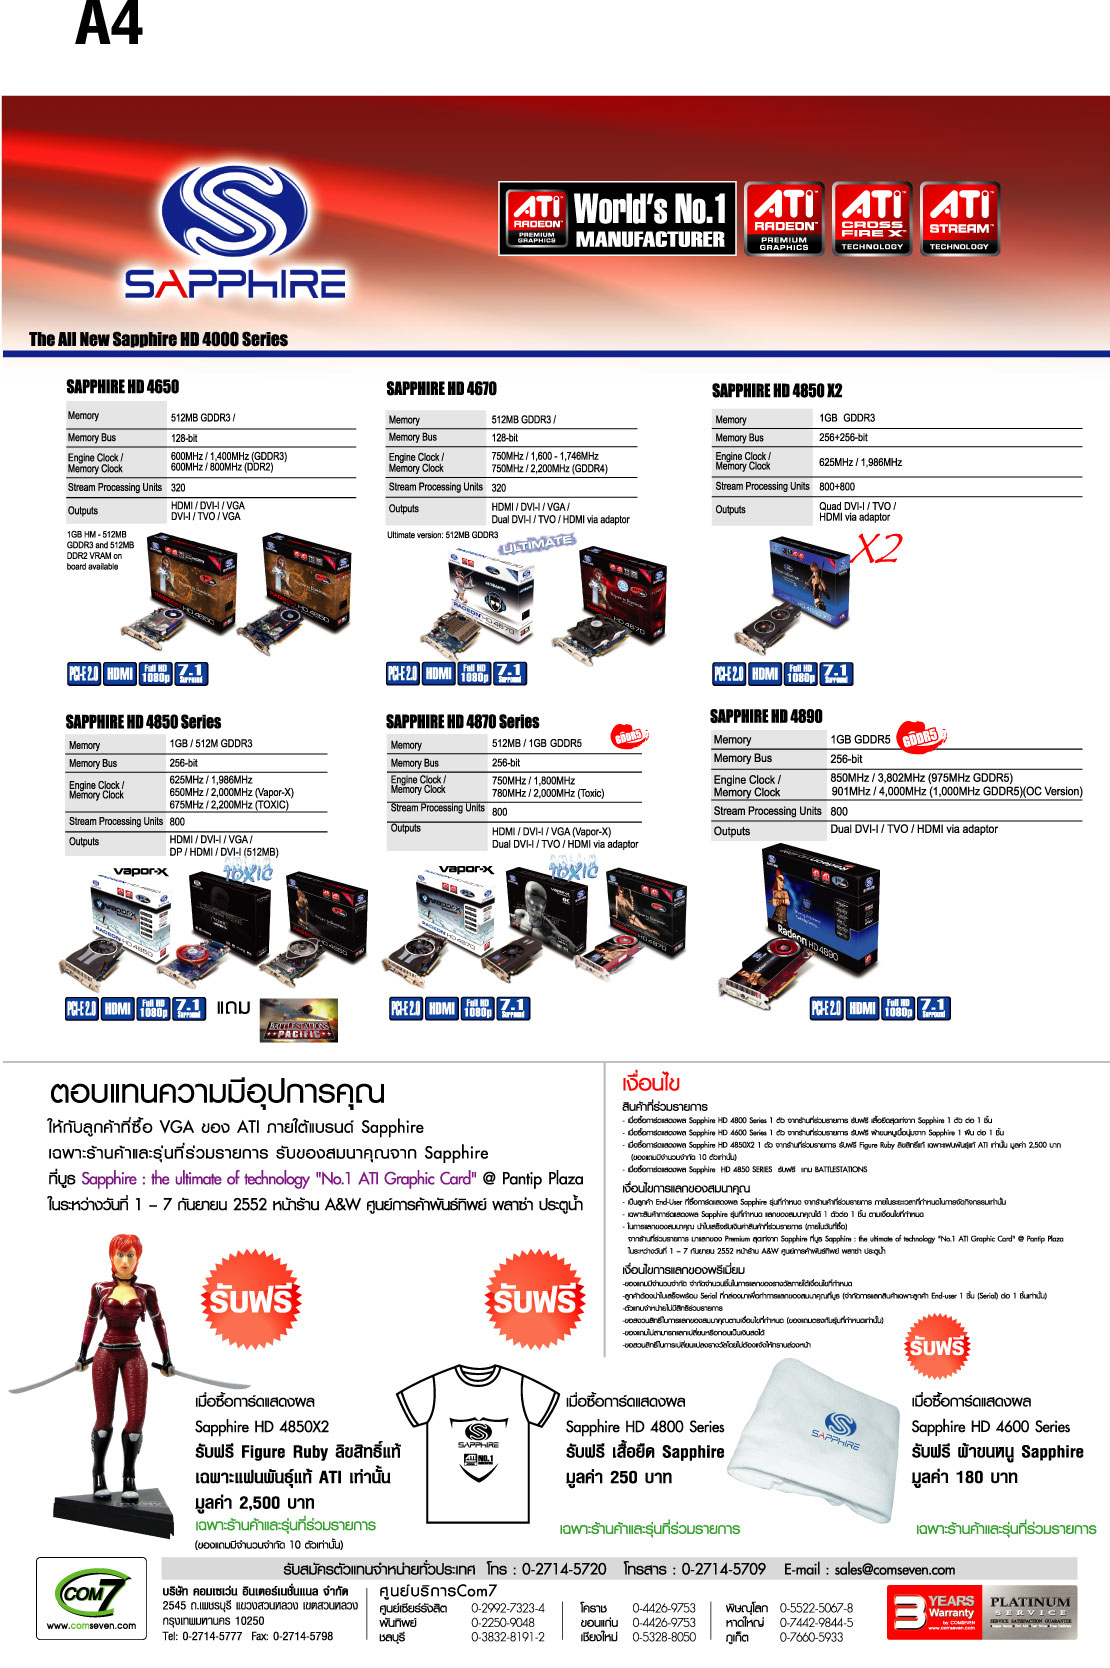 final brochure โปรโมชั่นจาก Sapphire ในงาน Ultimate technology with Sapphire @ Pantip Plaza